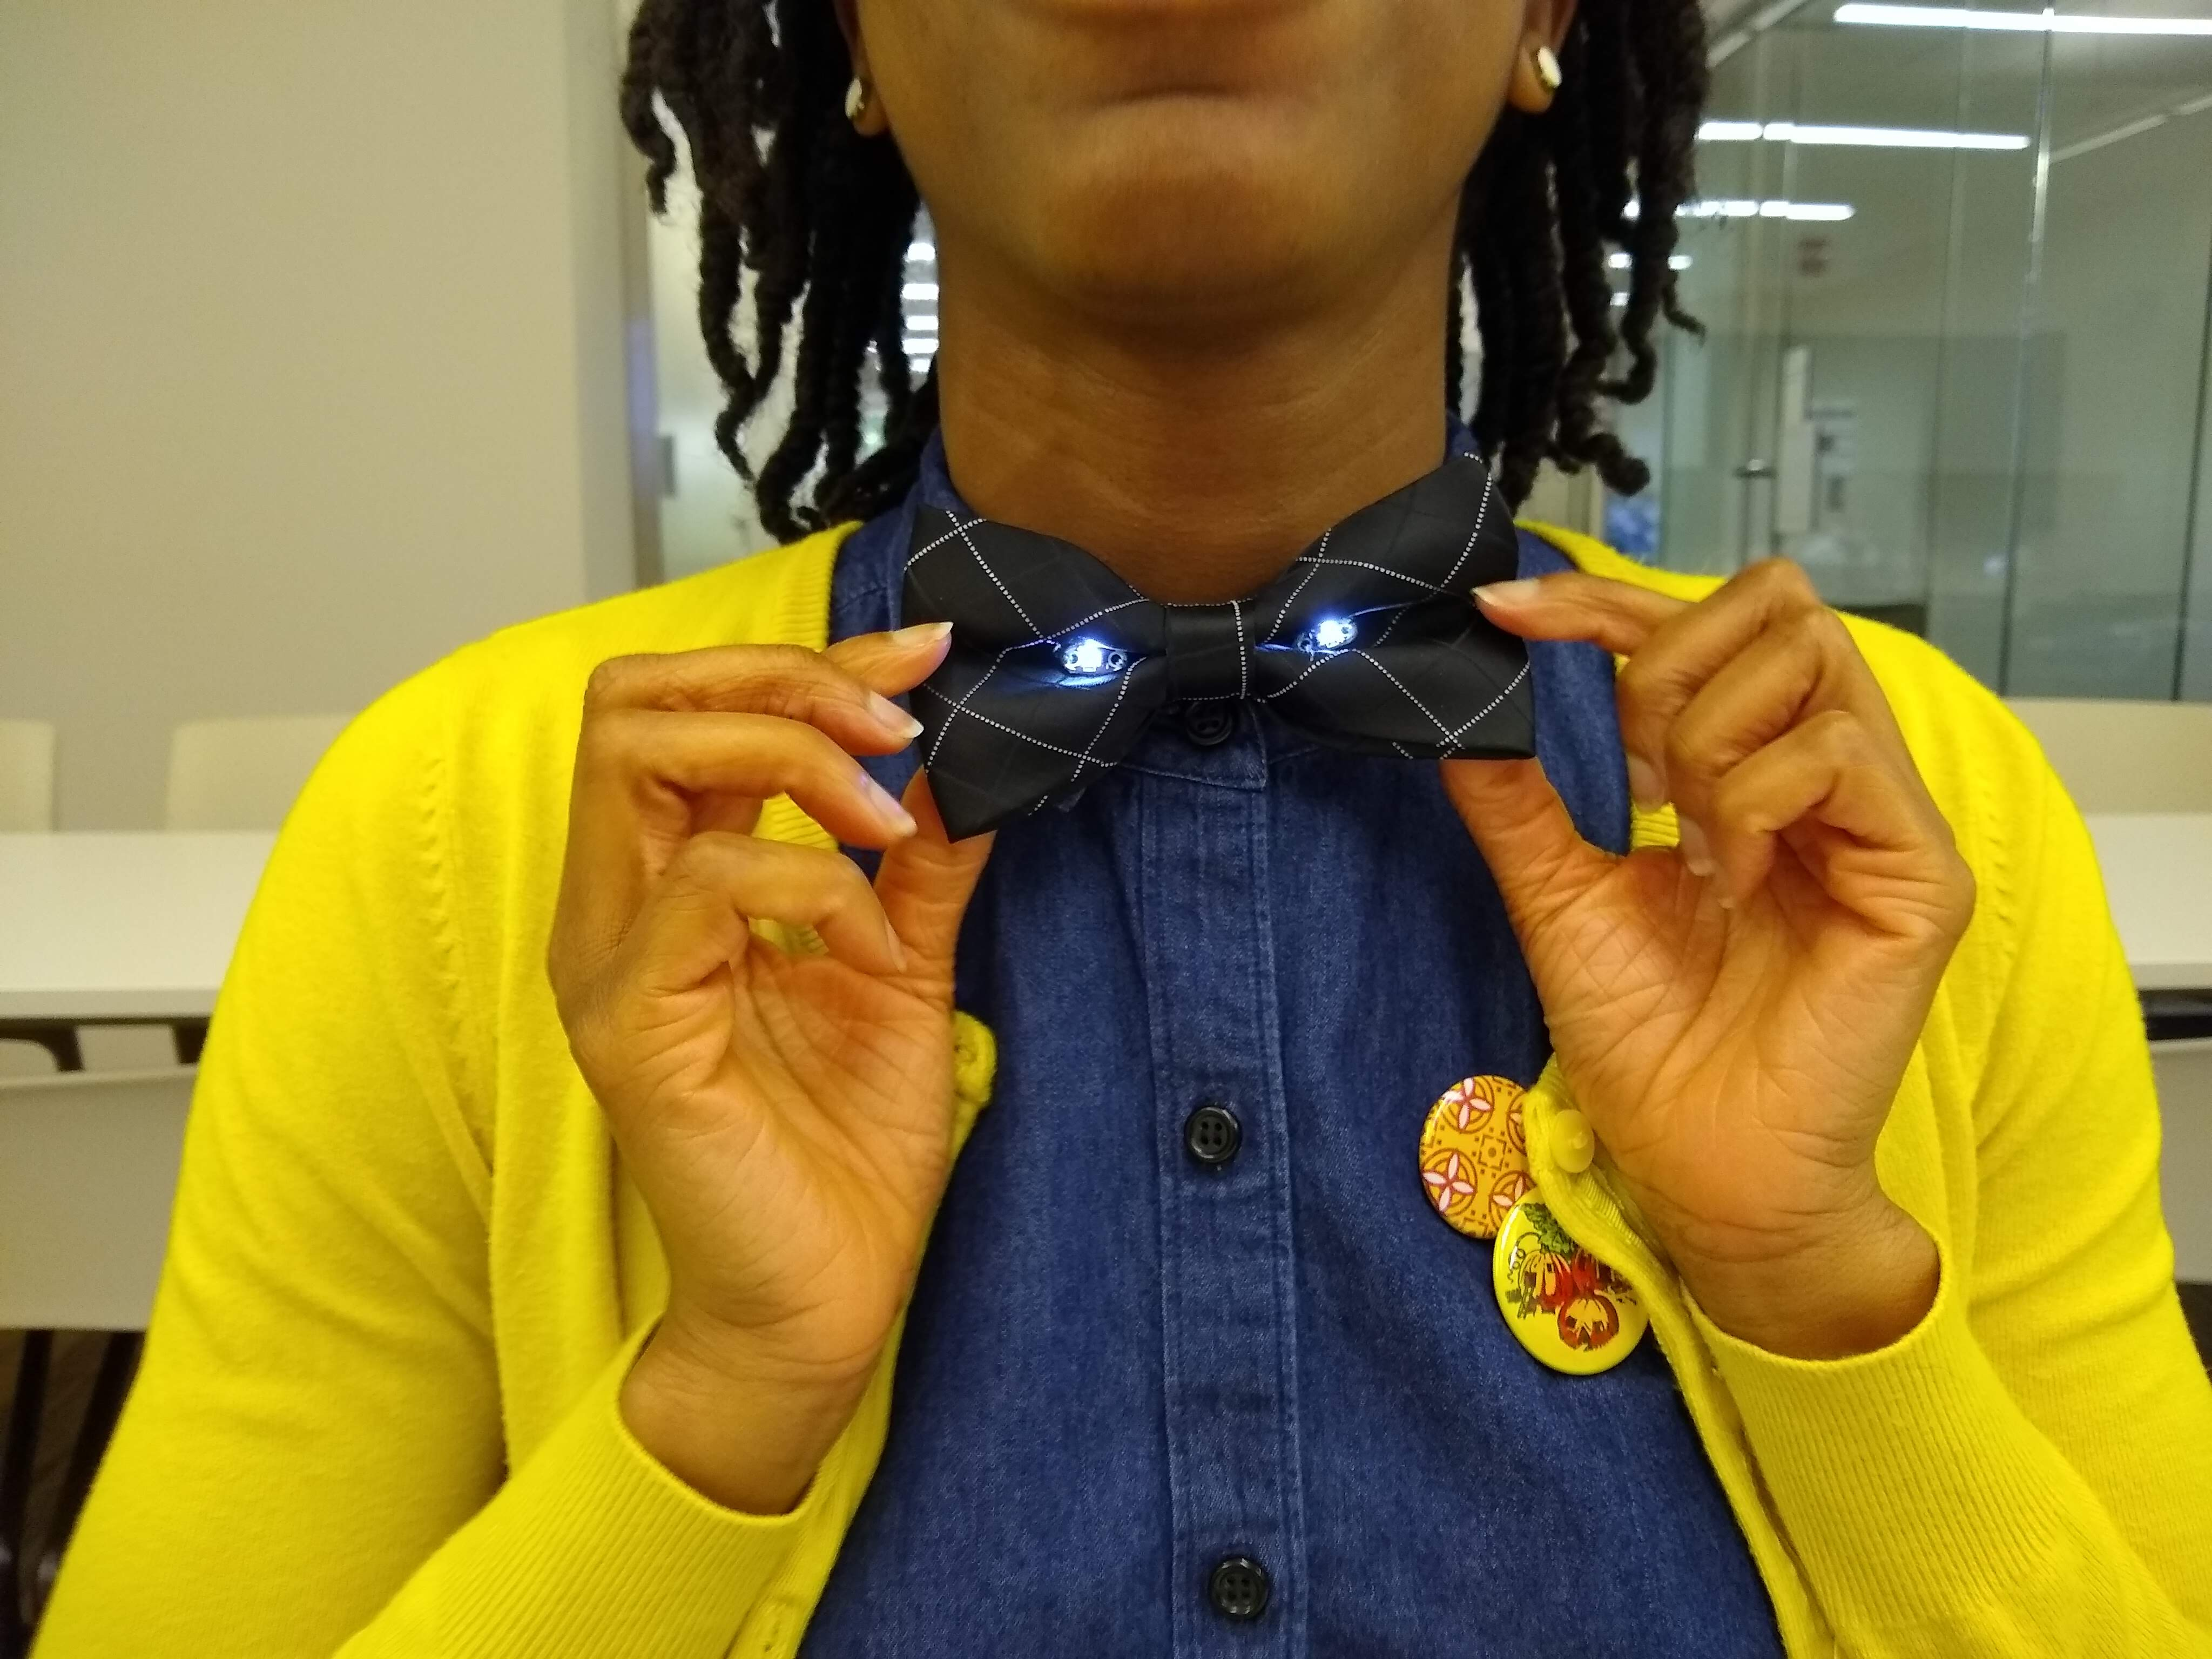 Woman wears a light up bow tie.